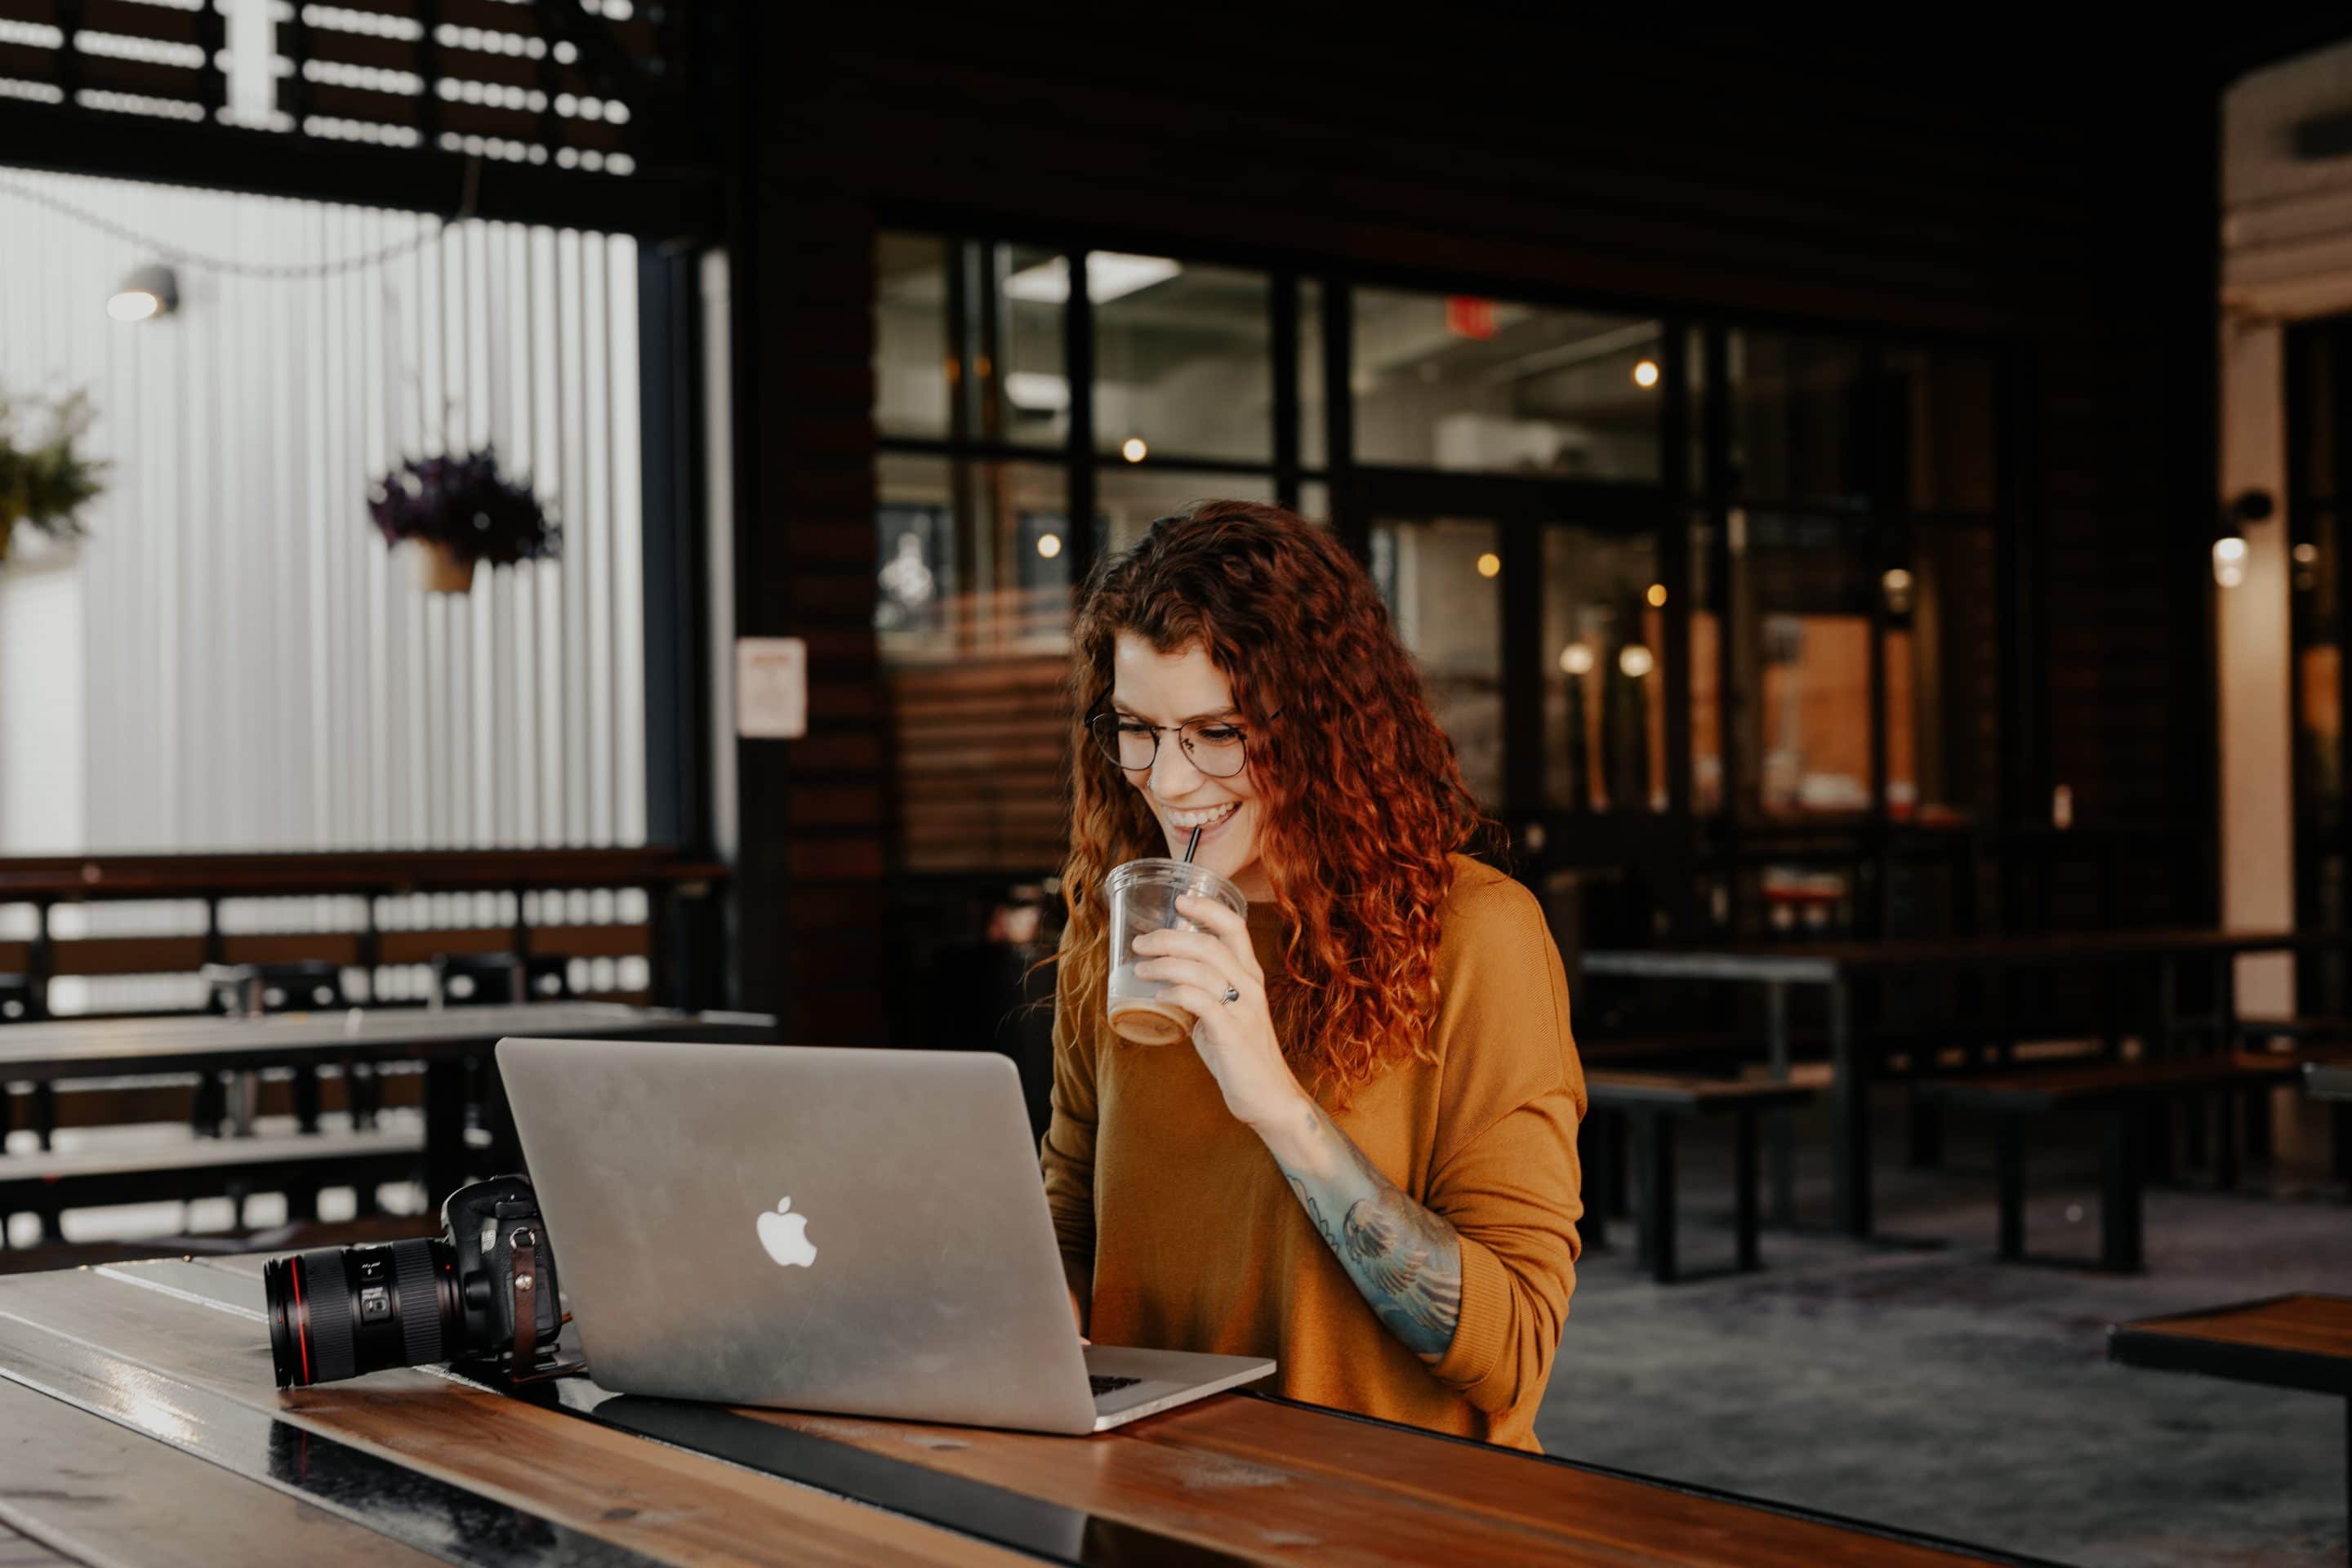 portrait of photographer with laptop from unsplash